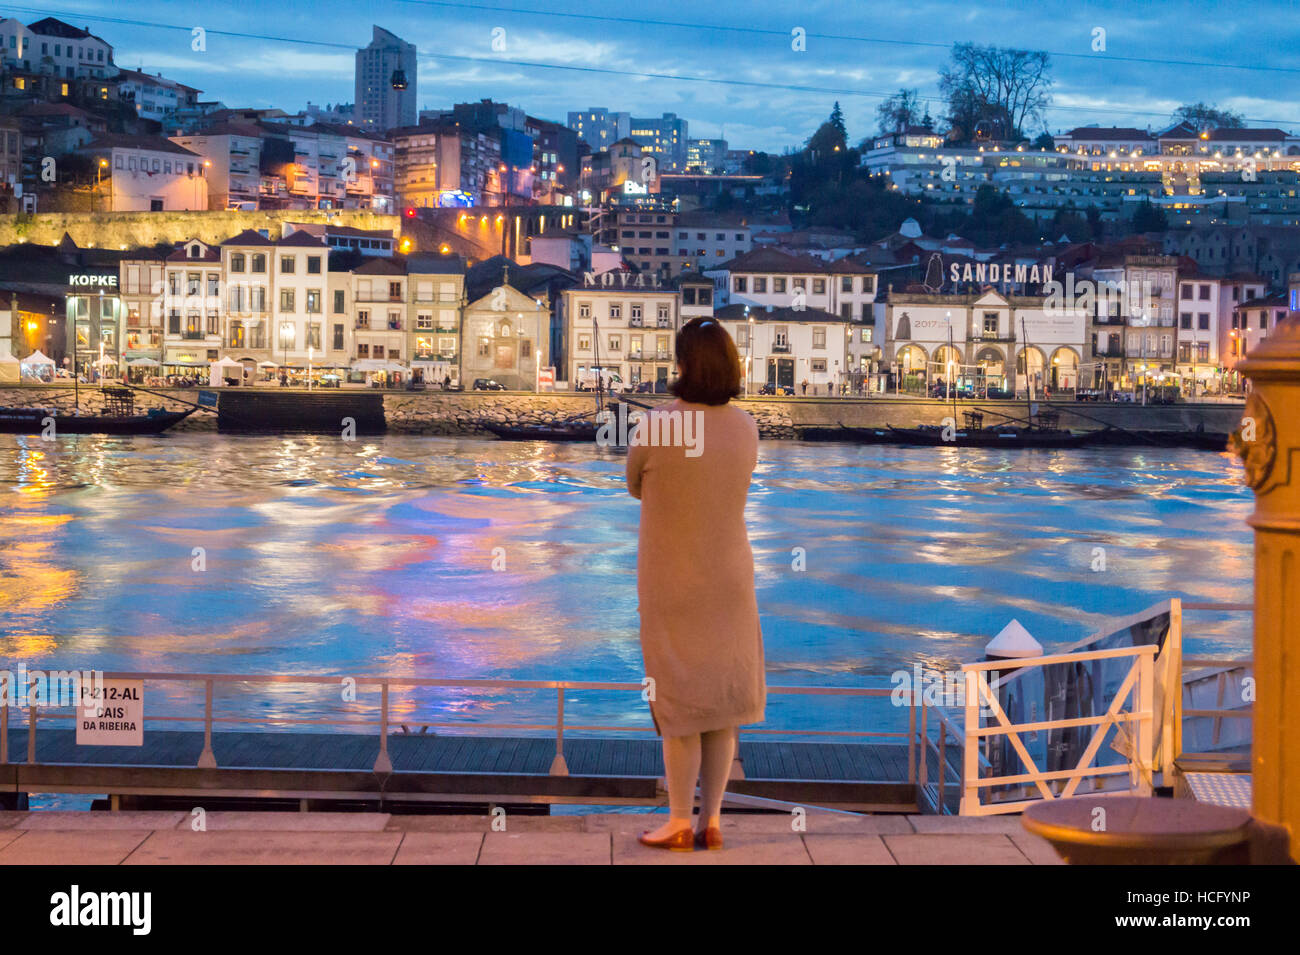 lone-figure-of-a-woman-on-the-ribeira-looking-at-the-port-lodges-vila-HCFYNP.jpg